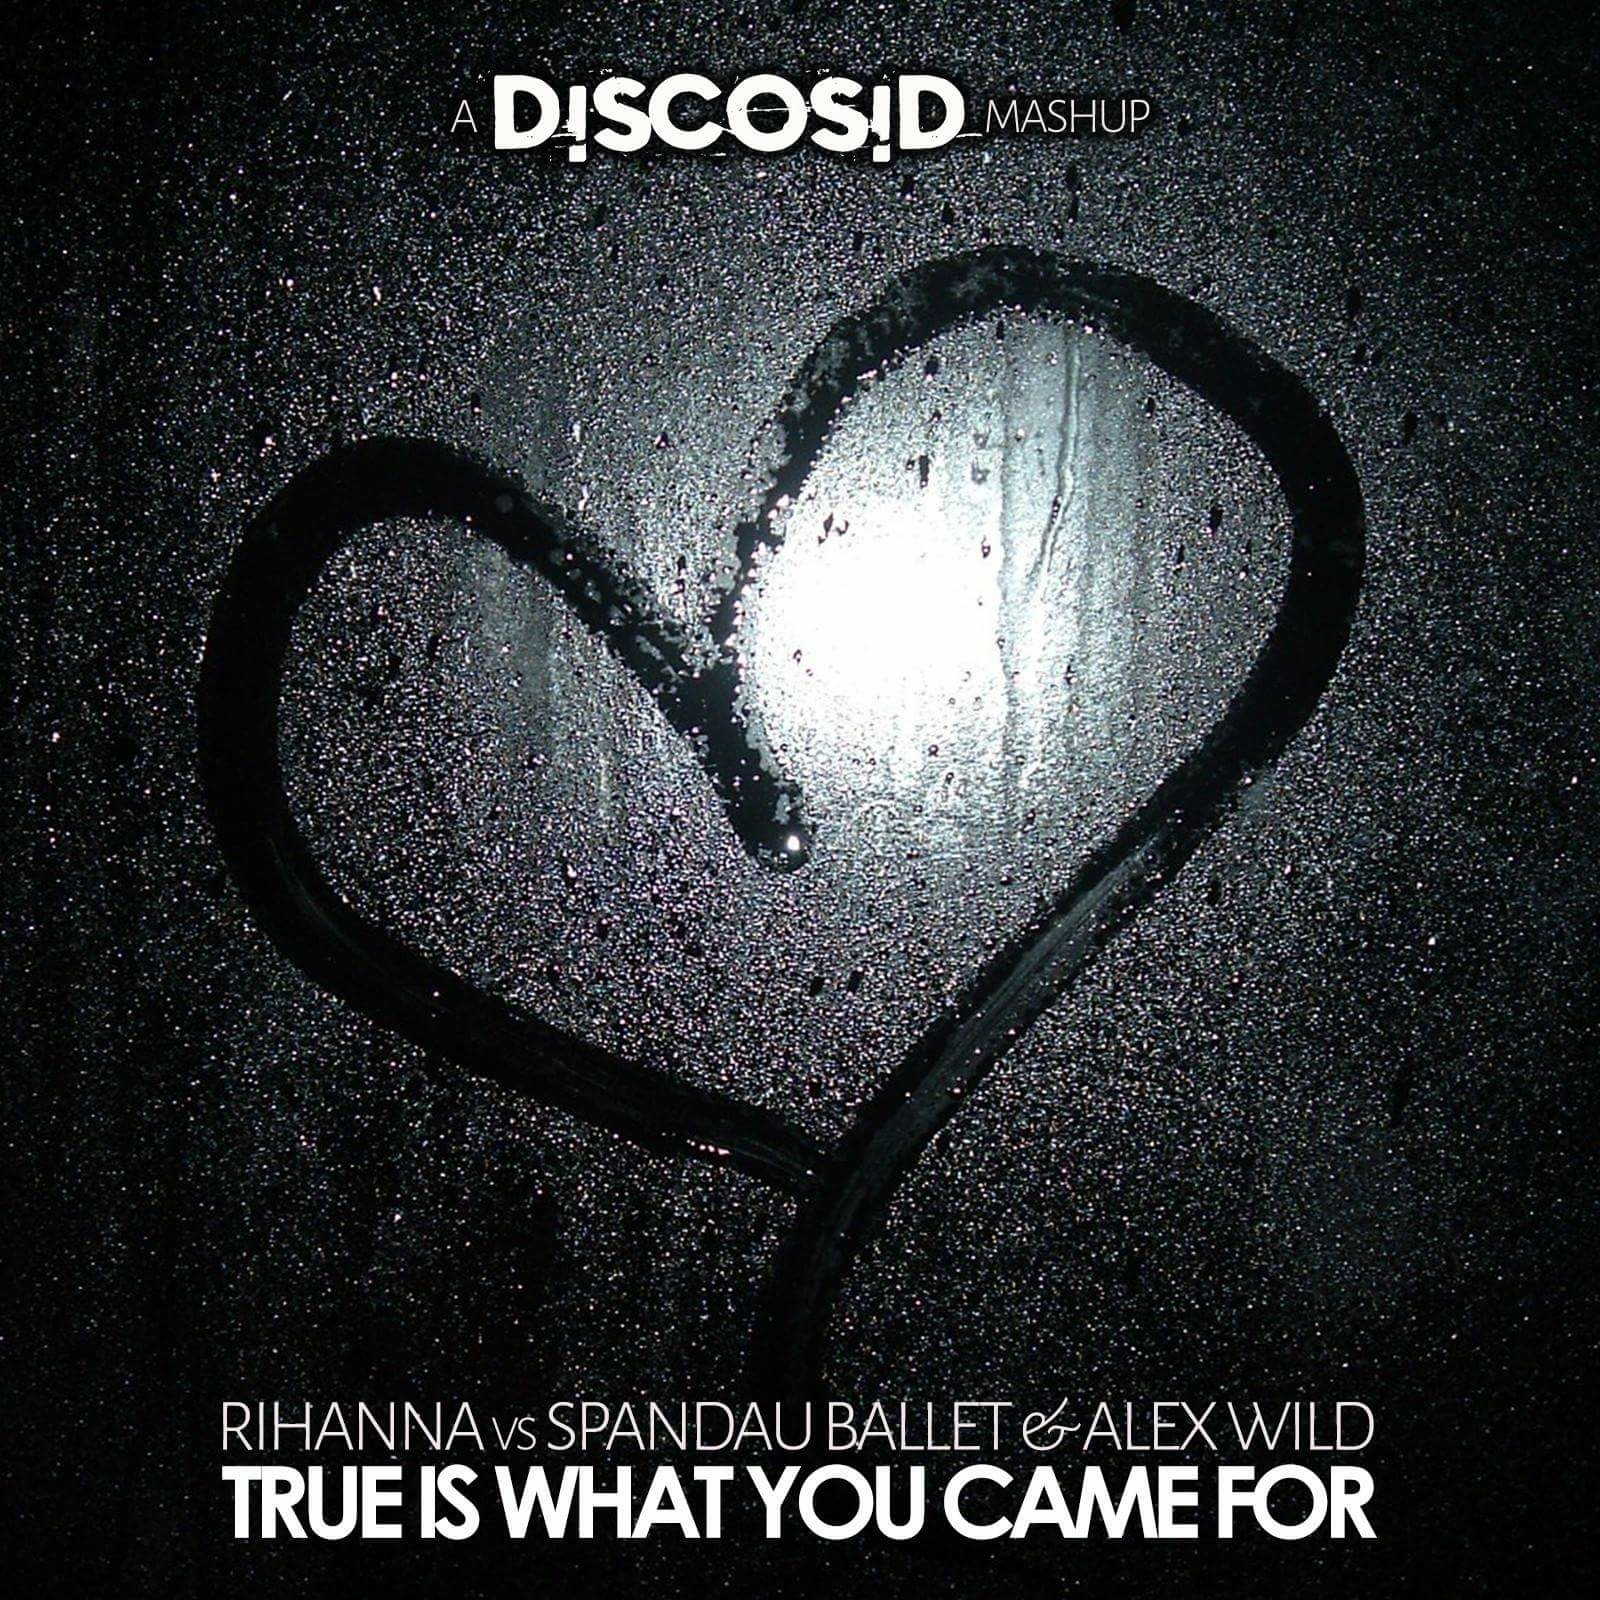 Rihanna Vs Spandau Ballet & Alex Wild - True Is What You Came For (Discosid Mashup)